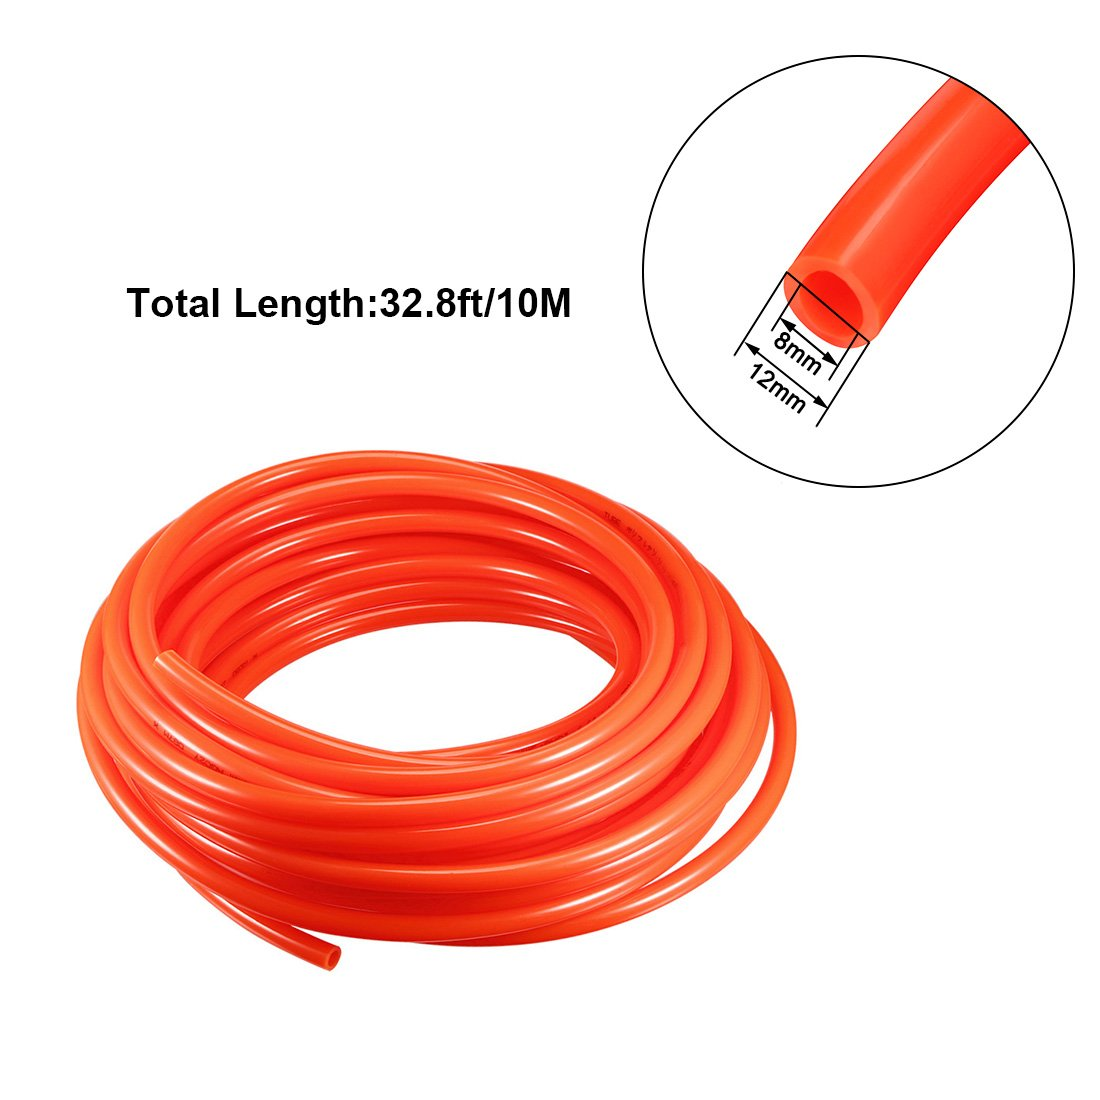 SOURCING MAP sourcing map 12mm X 8mm Pneumatic Air PU Hose Pipe Tube 10 Meter 32.8ft Black